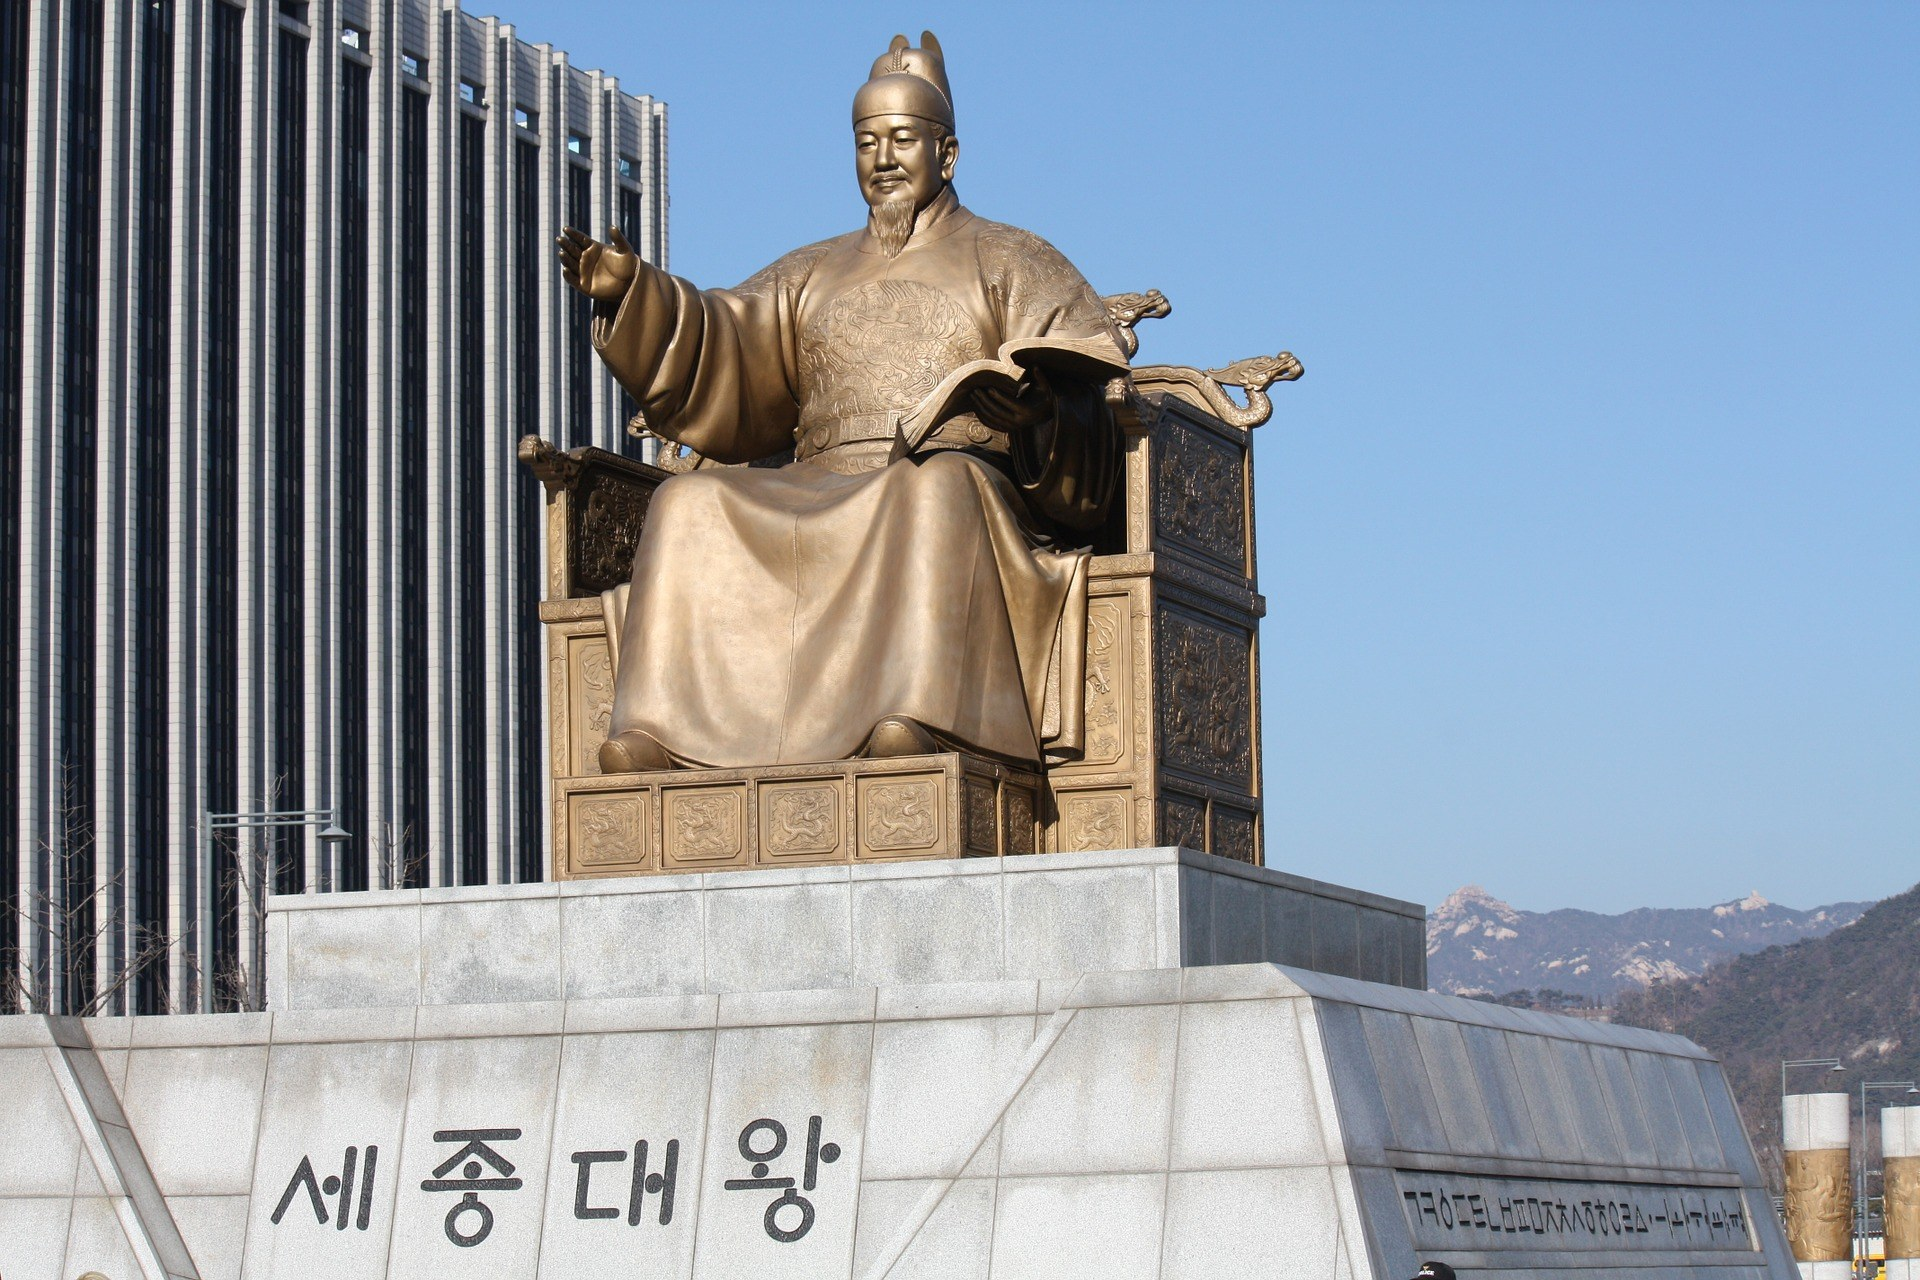 king sejong the great King sejong the great was, as his title suggests, one of the greatest and most loved kings in korean history he is credited with a lot of advances in science, strengthening the korean military, and developing positive foreign policies (including encouraging trade with japan.